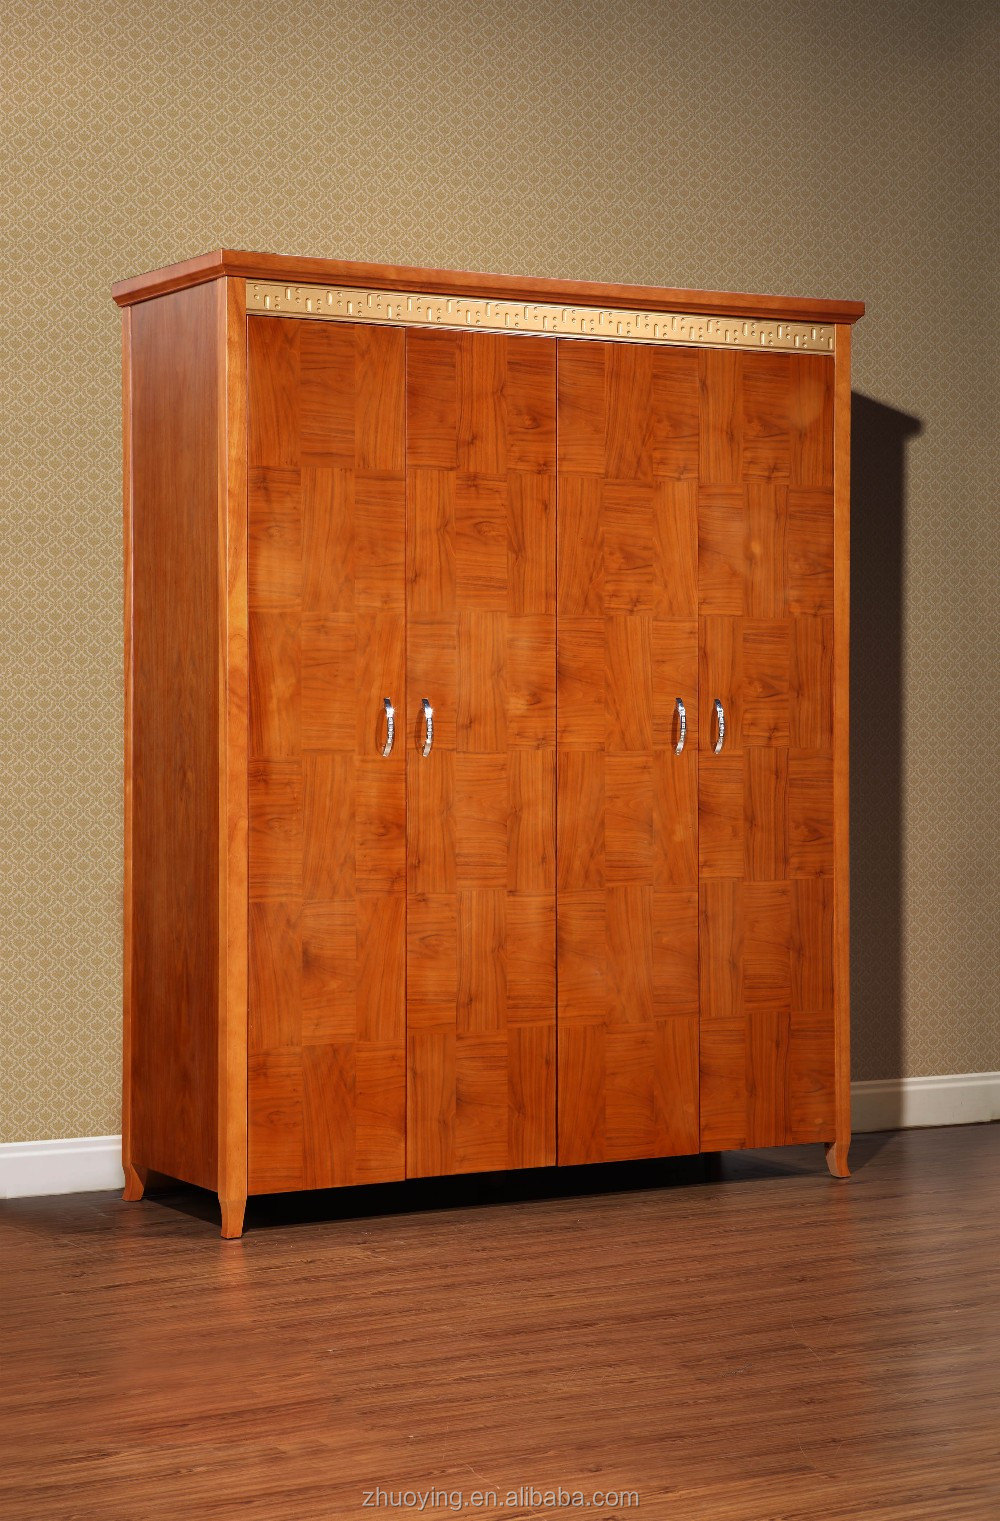 Bedroom wardrobe design with storage cabinet clothes for Cloth cabinet design